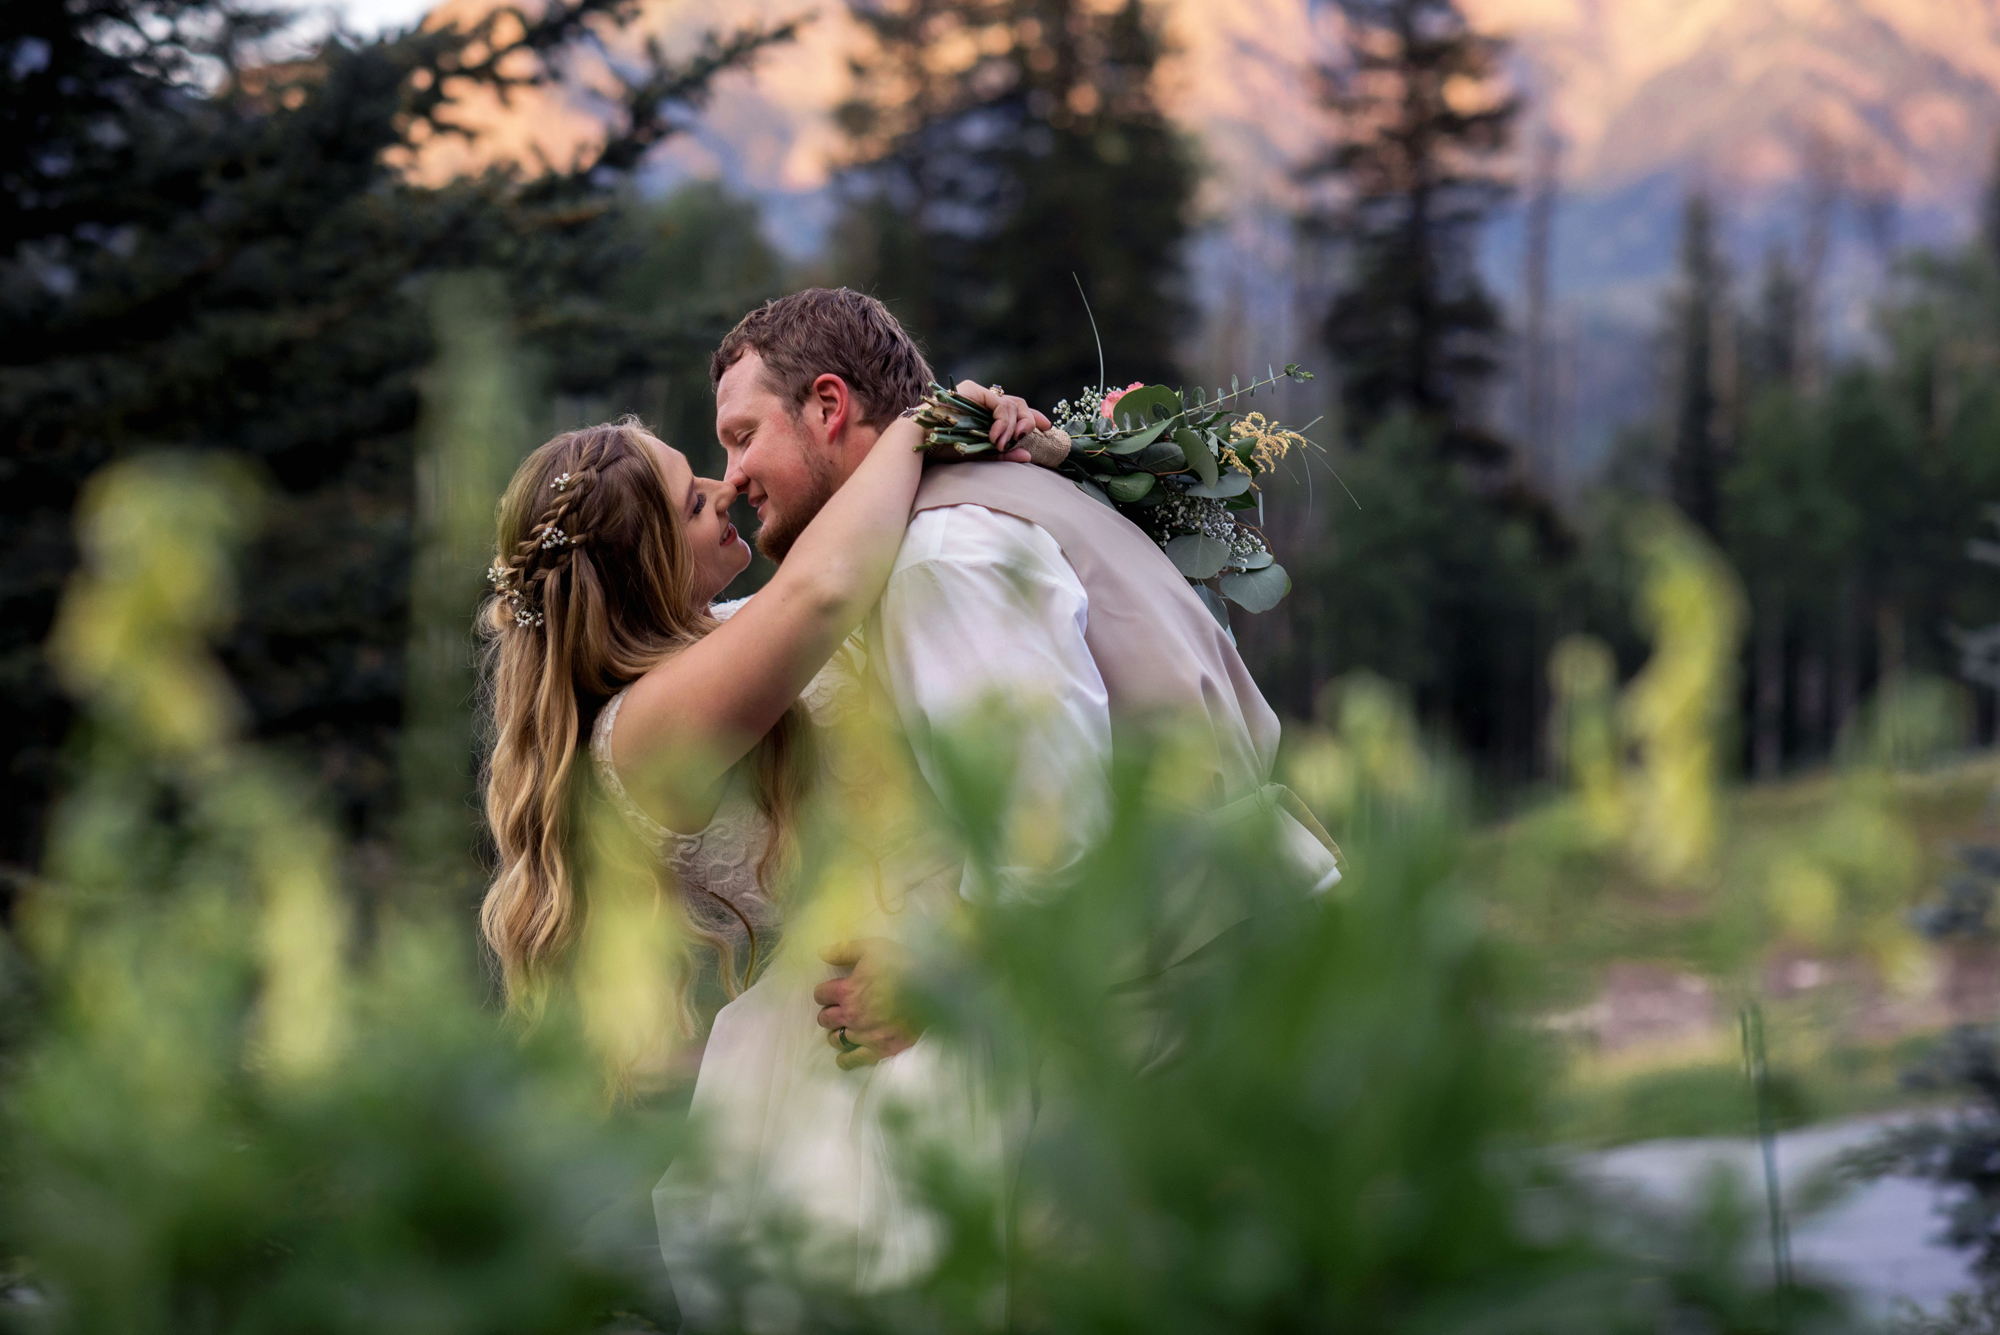 Cascade Village Wedding by Tara Vigil, Durango, CO